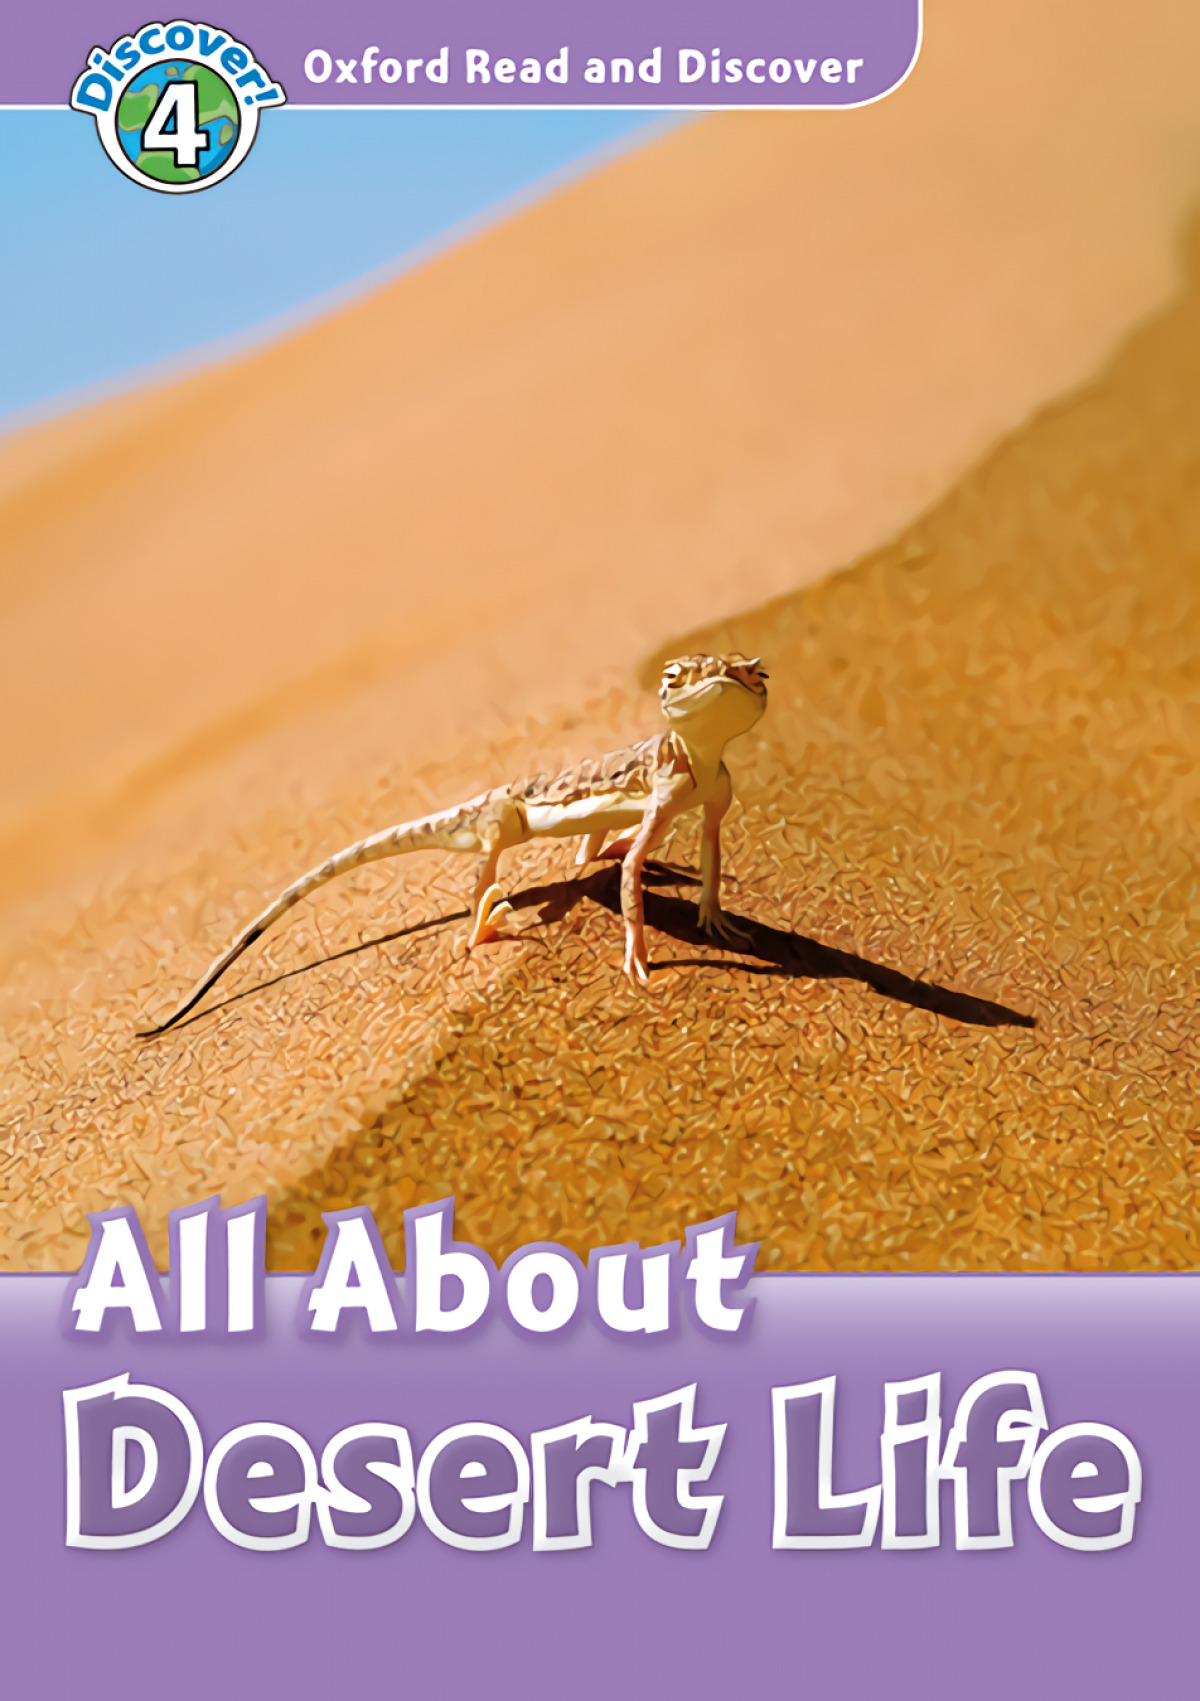 Oxford Read and Discover 4. All About Desert Life MP3 Pack